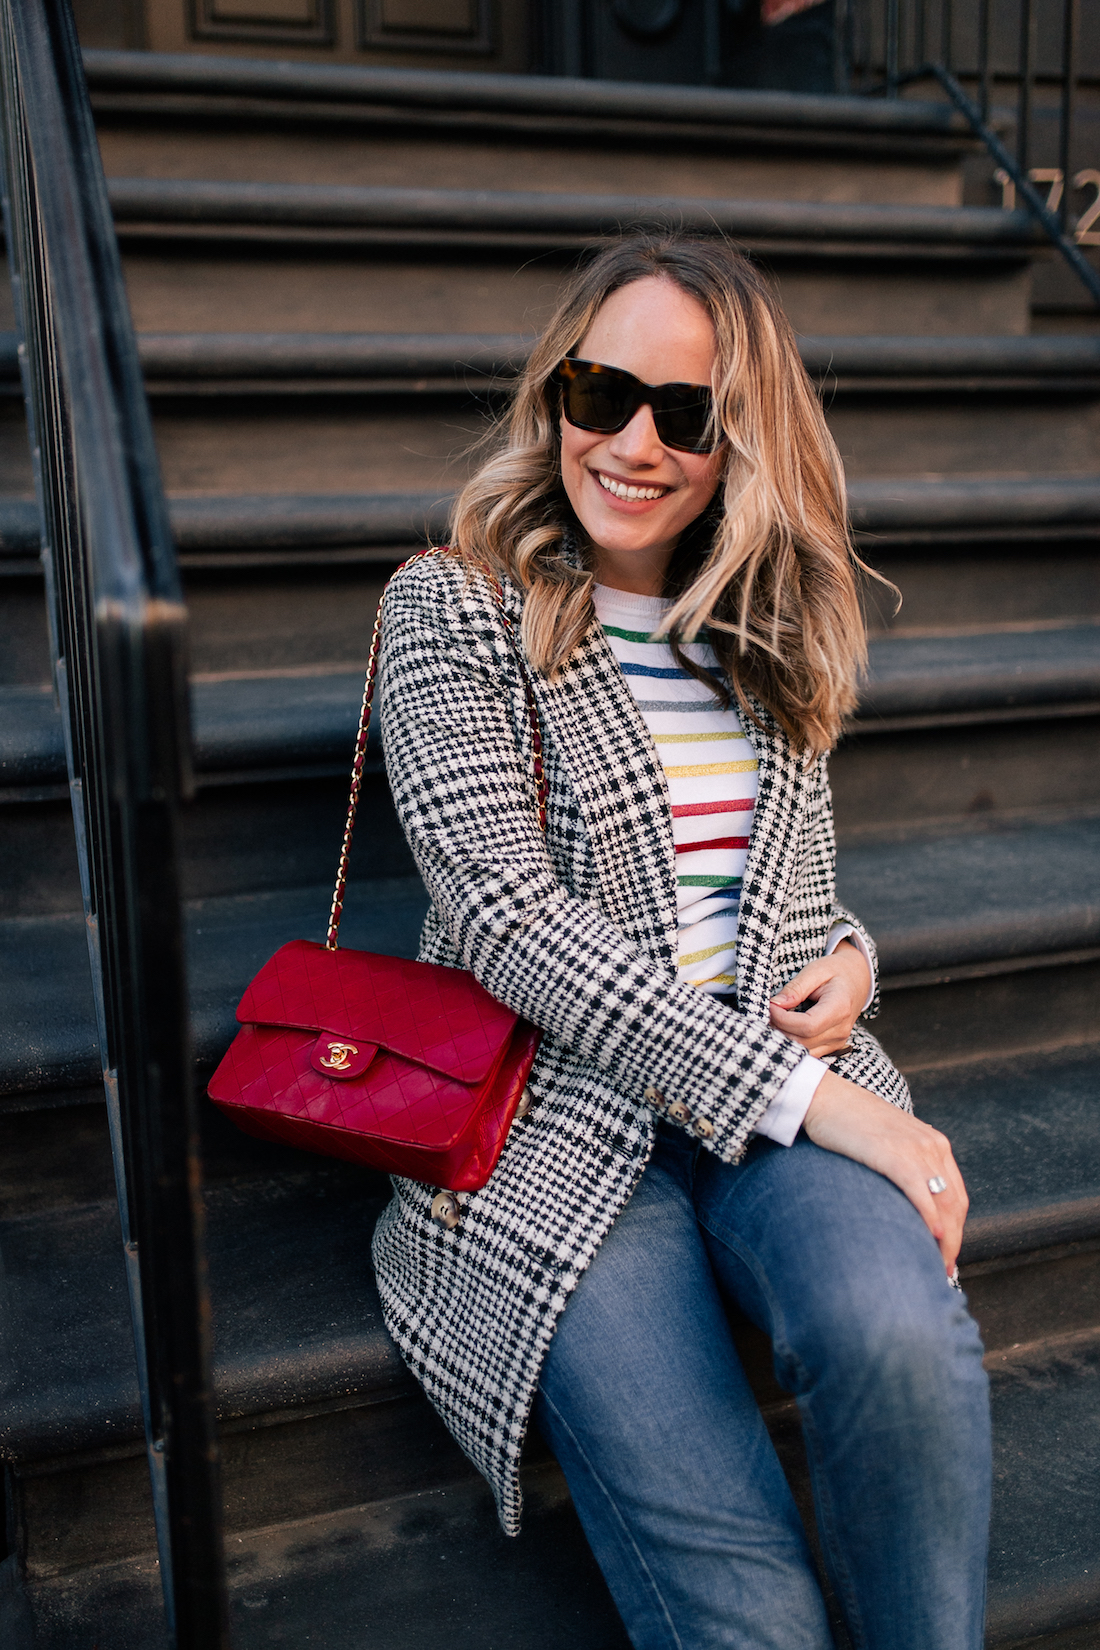 Outfit Details: Topshop Coat // Brooks Brothers Red Fleece Rainbow Sweater // Re/Done Denim // Vintage Chanel Purse // Celine Sunglasses (exact)